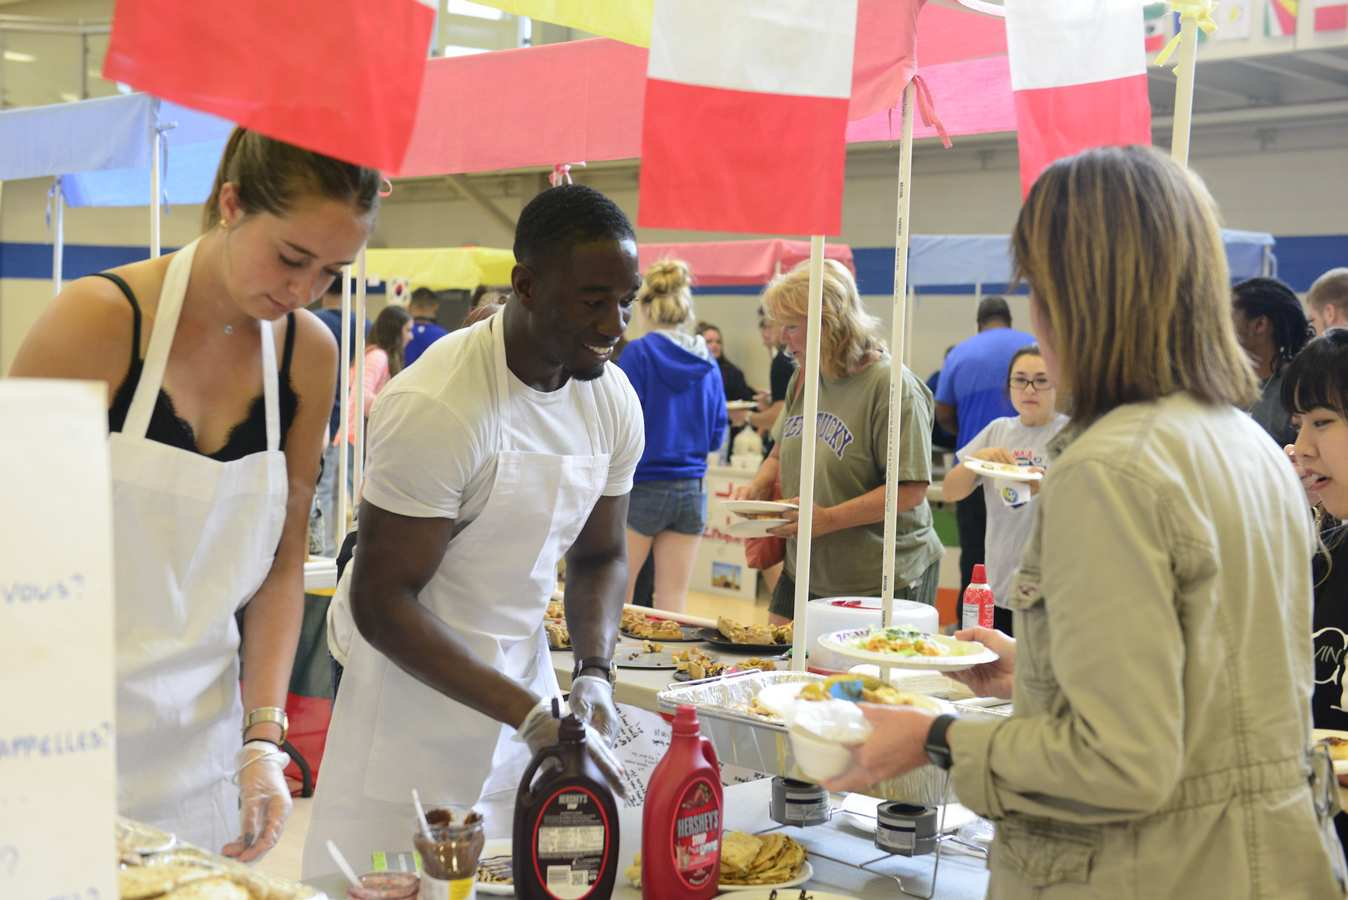 450 Attend International Marketplace at LWC